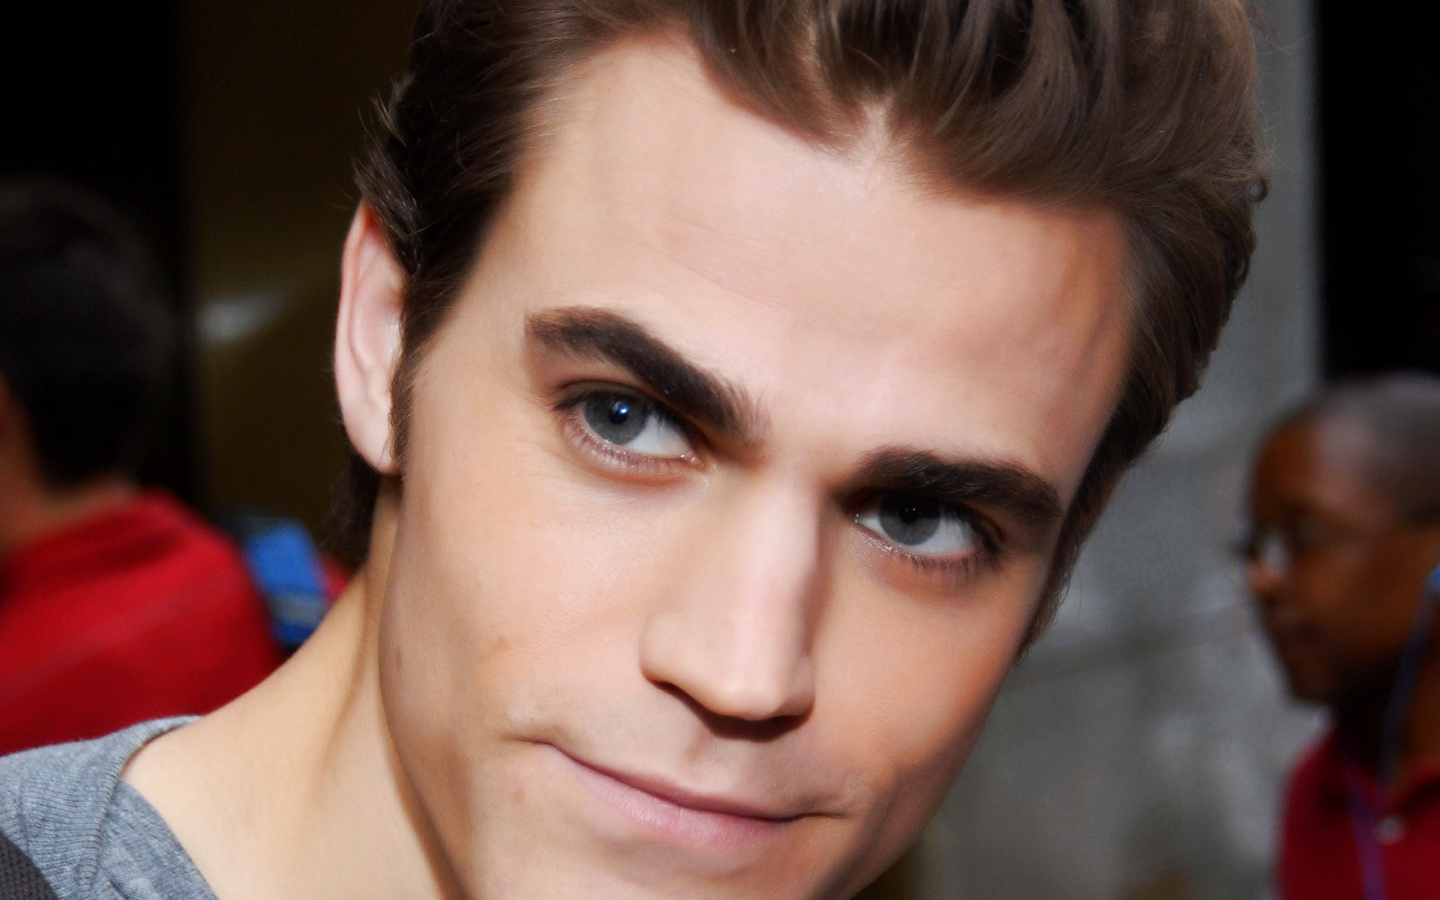 Paul Wesley Close Up for 1440 x 900 widescreen resolution